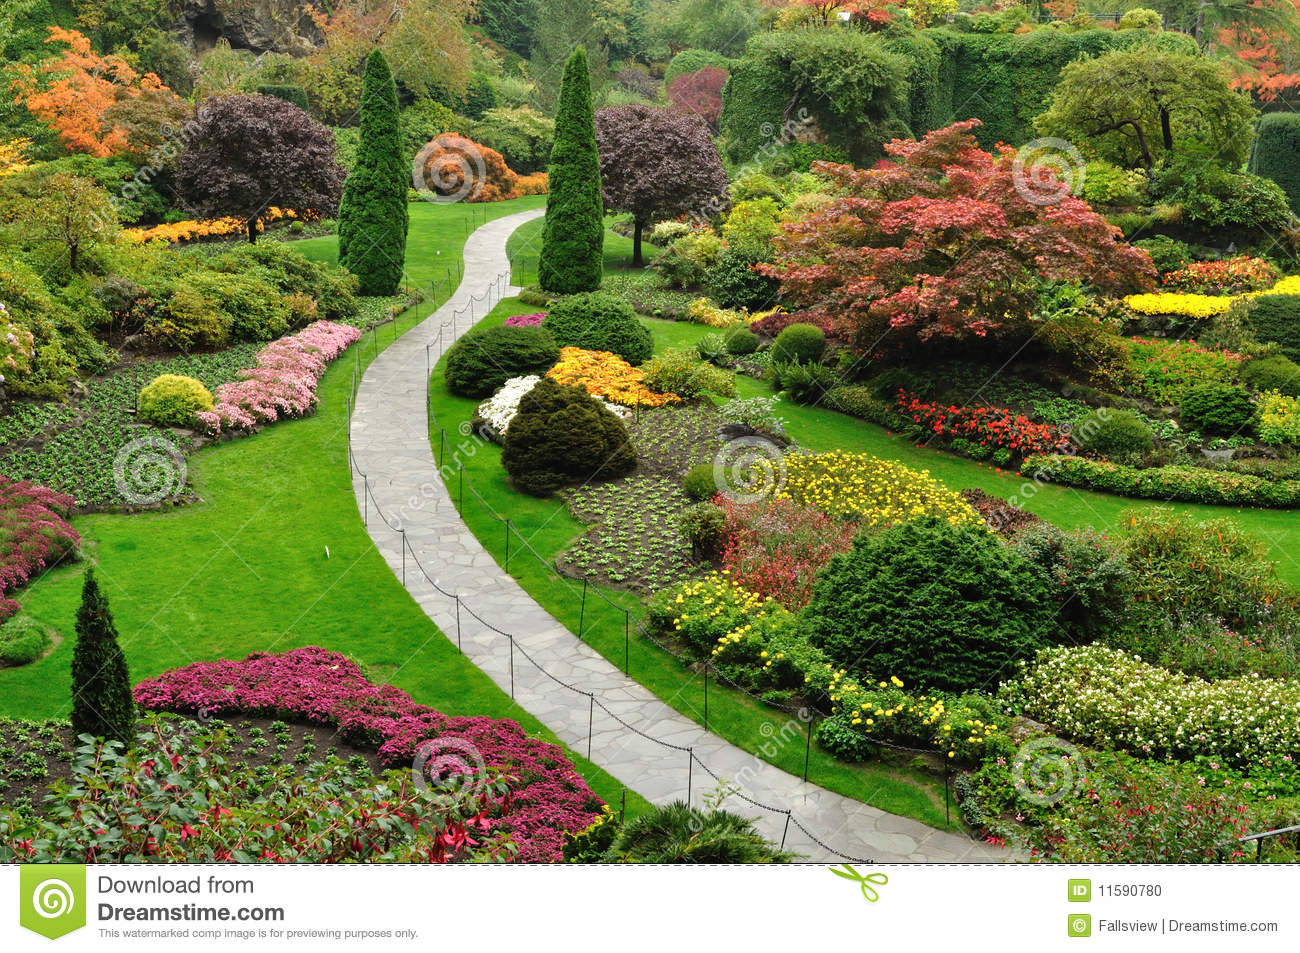 Am nagement de jardins photo stock image 11590780 for Photo amenagement jardin